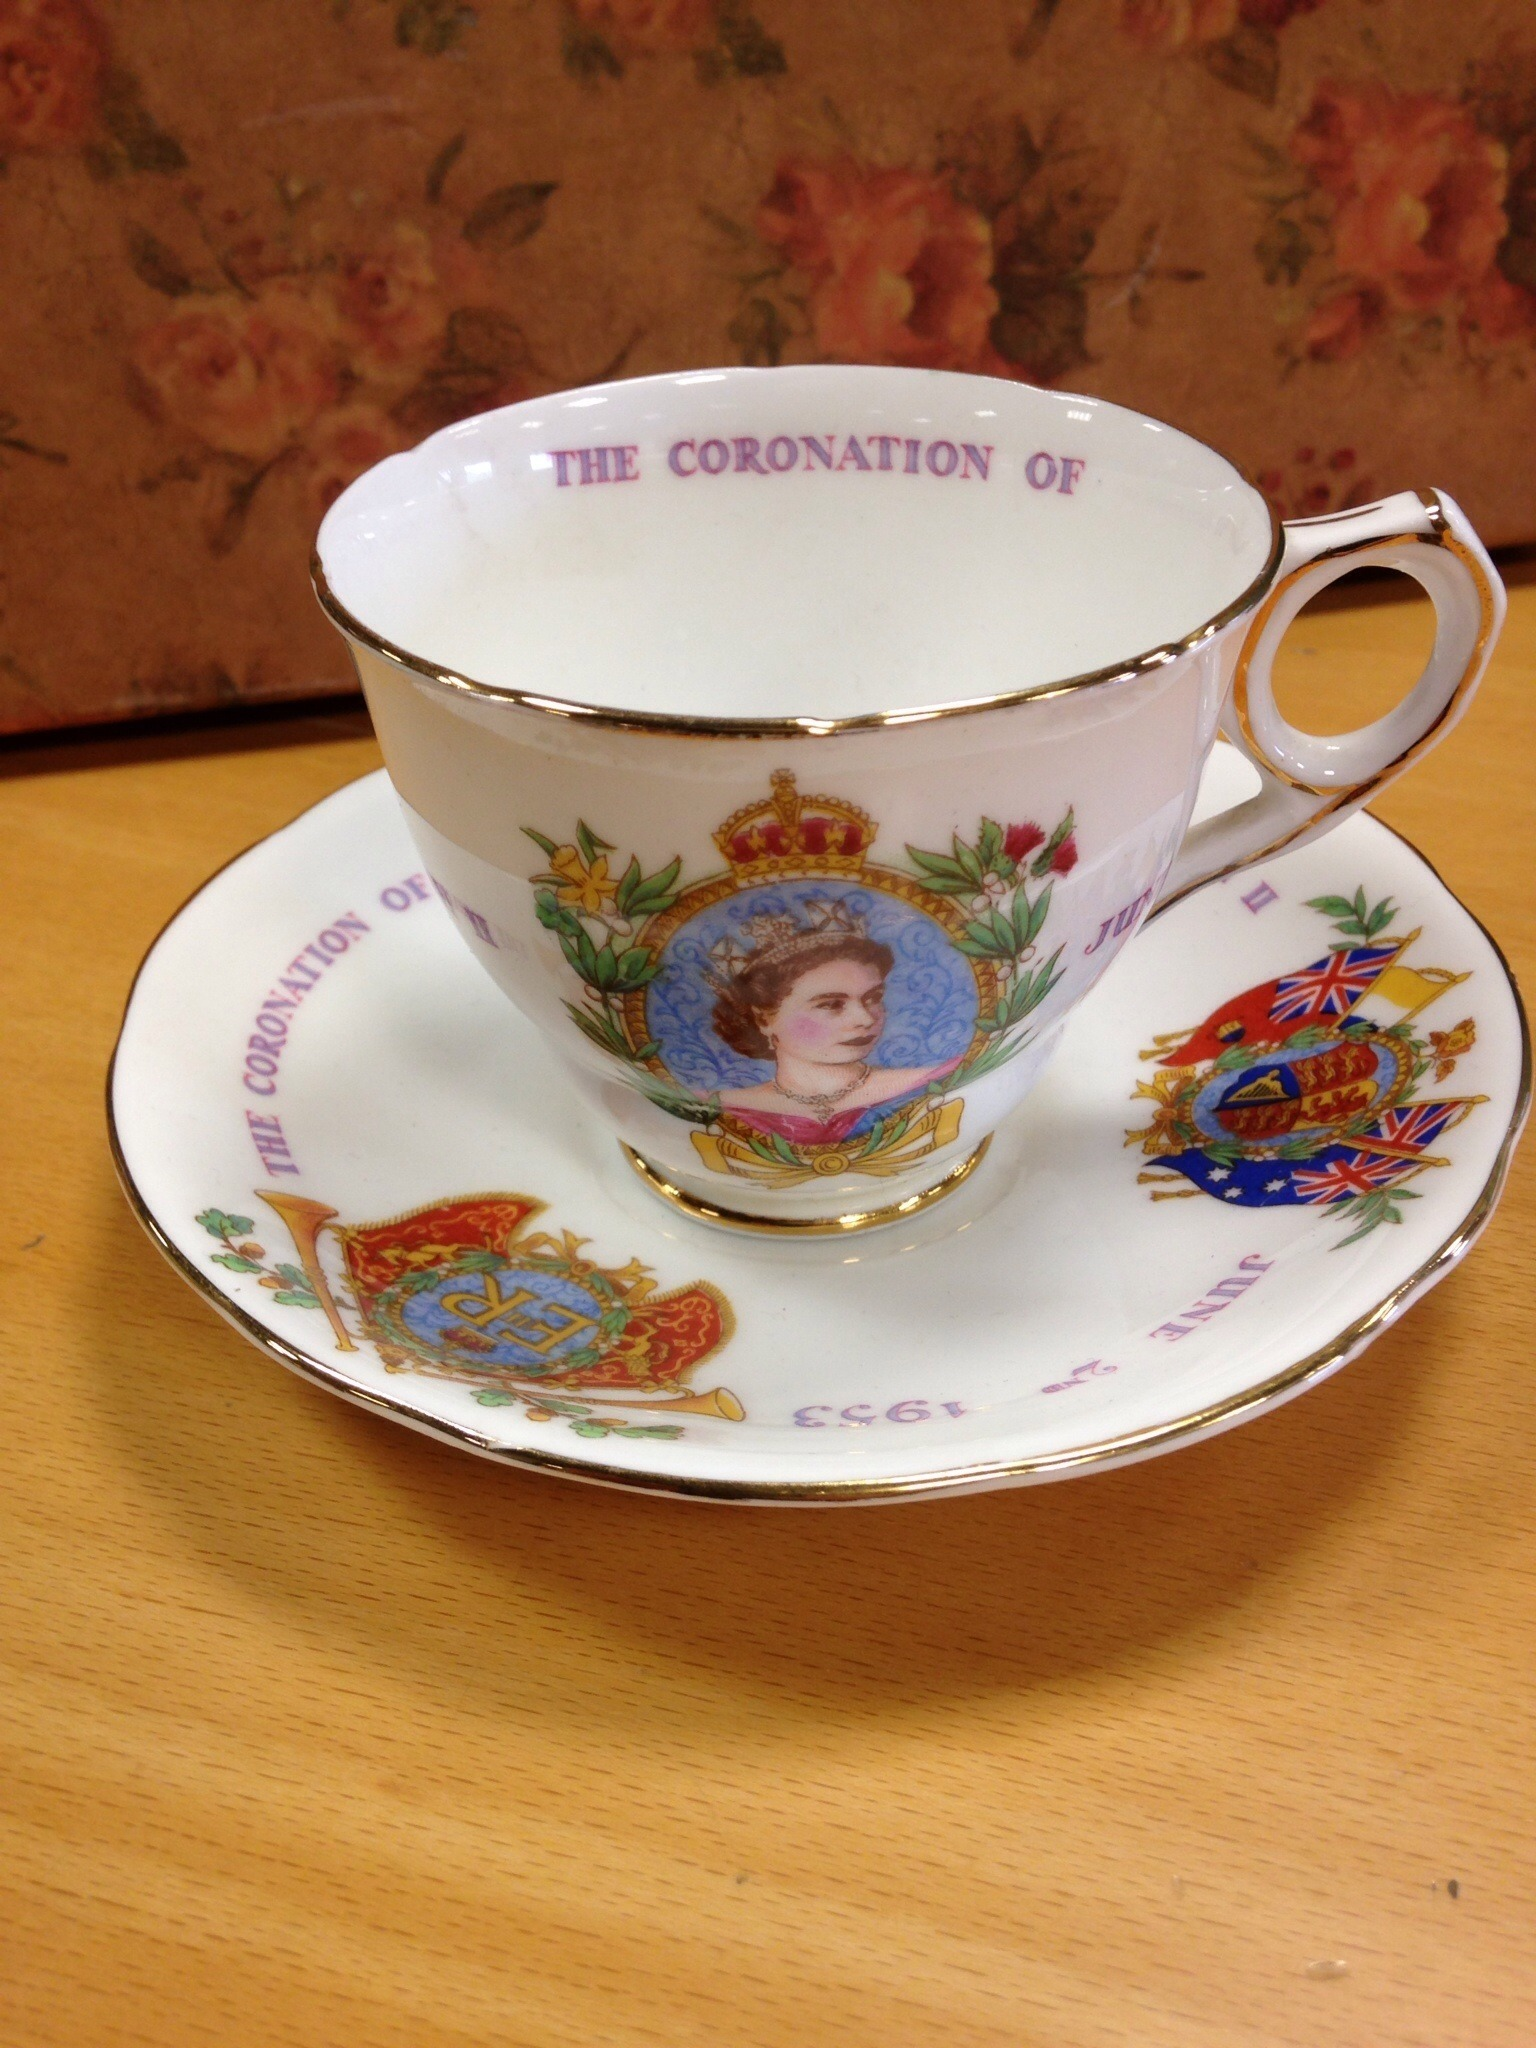 Cup and saucer to commemorate the coronation of Queen Elizabeth II